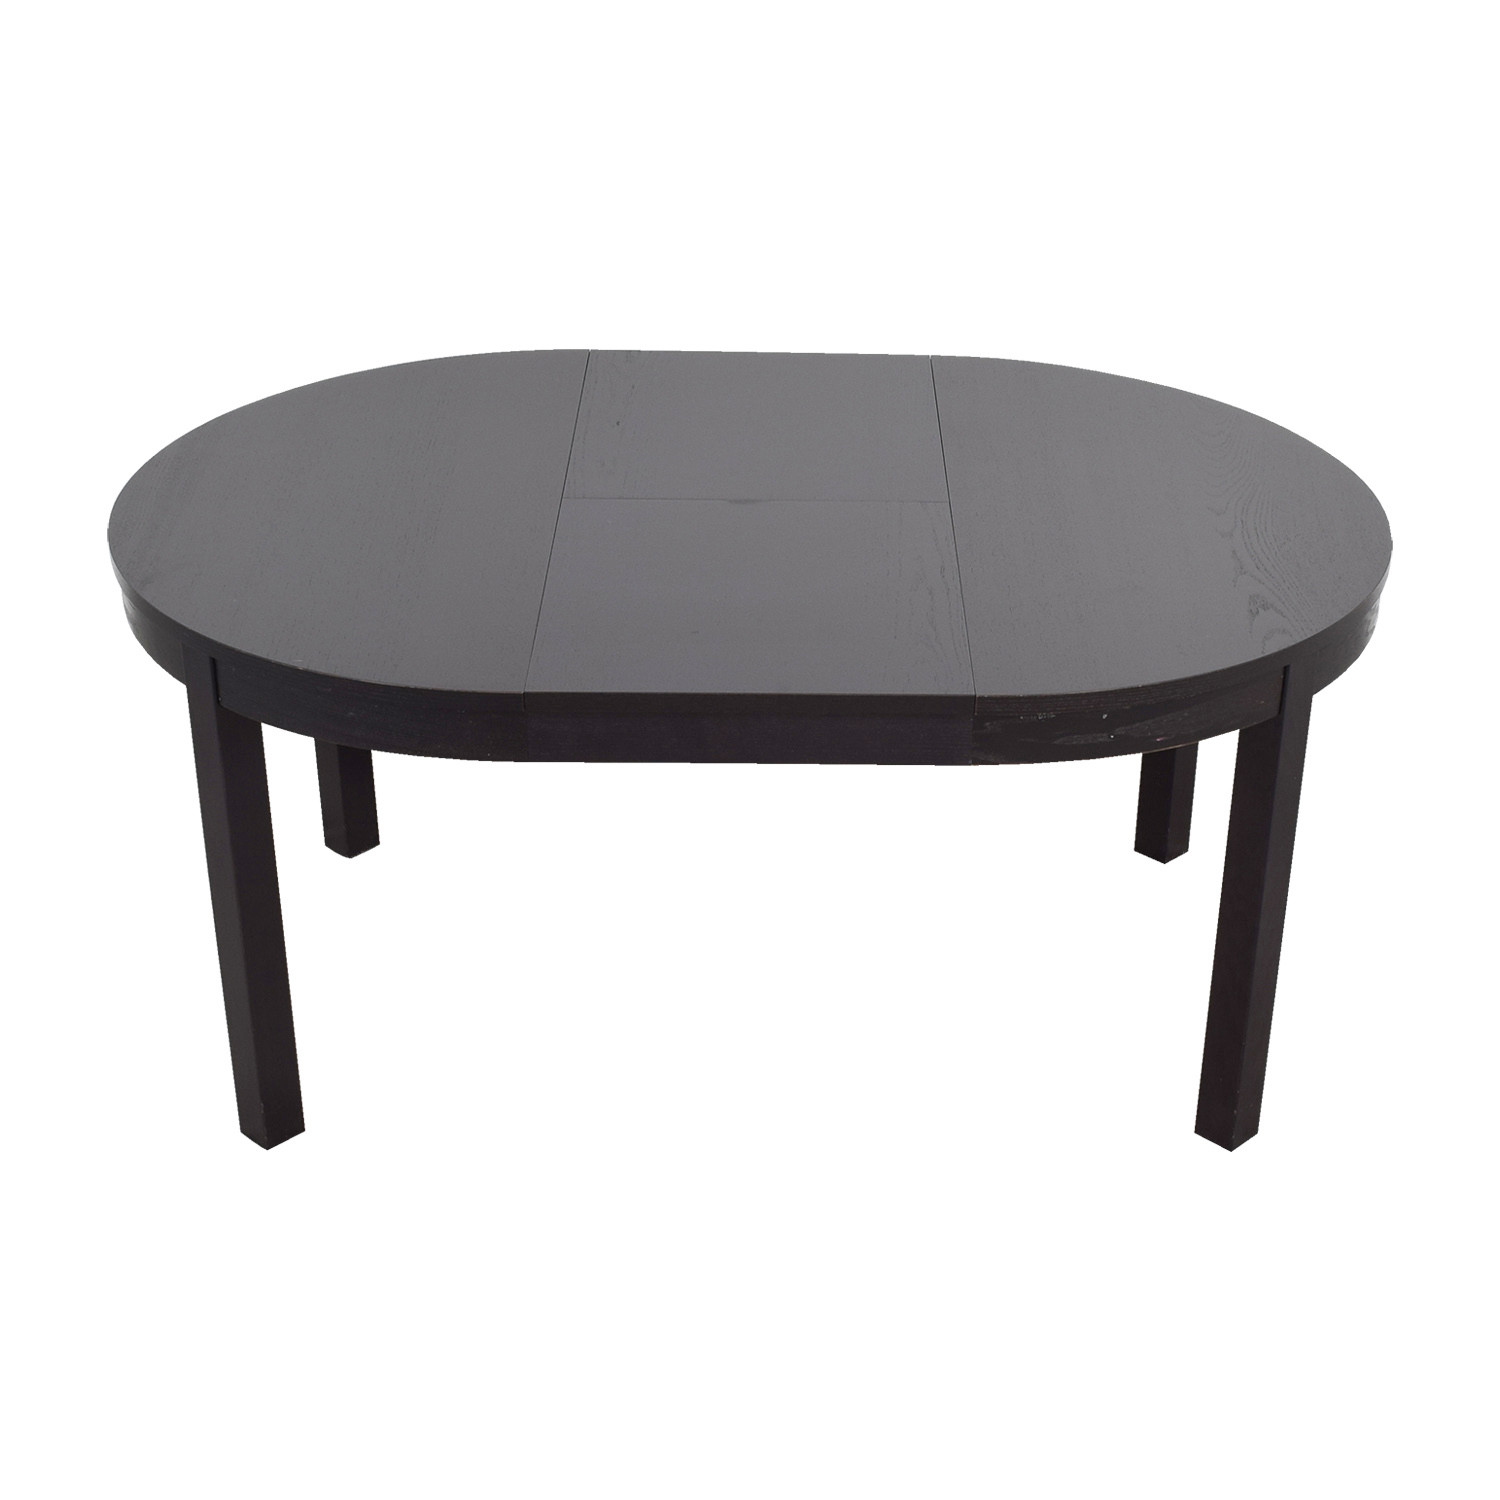 Best ideas about Ikea Round Dining Table . Save or Pin OFF IKEA IKEA Bjursta Extendable Round to Oval Now.